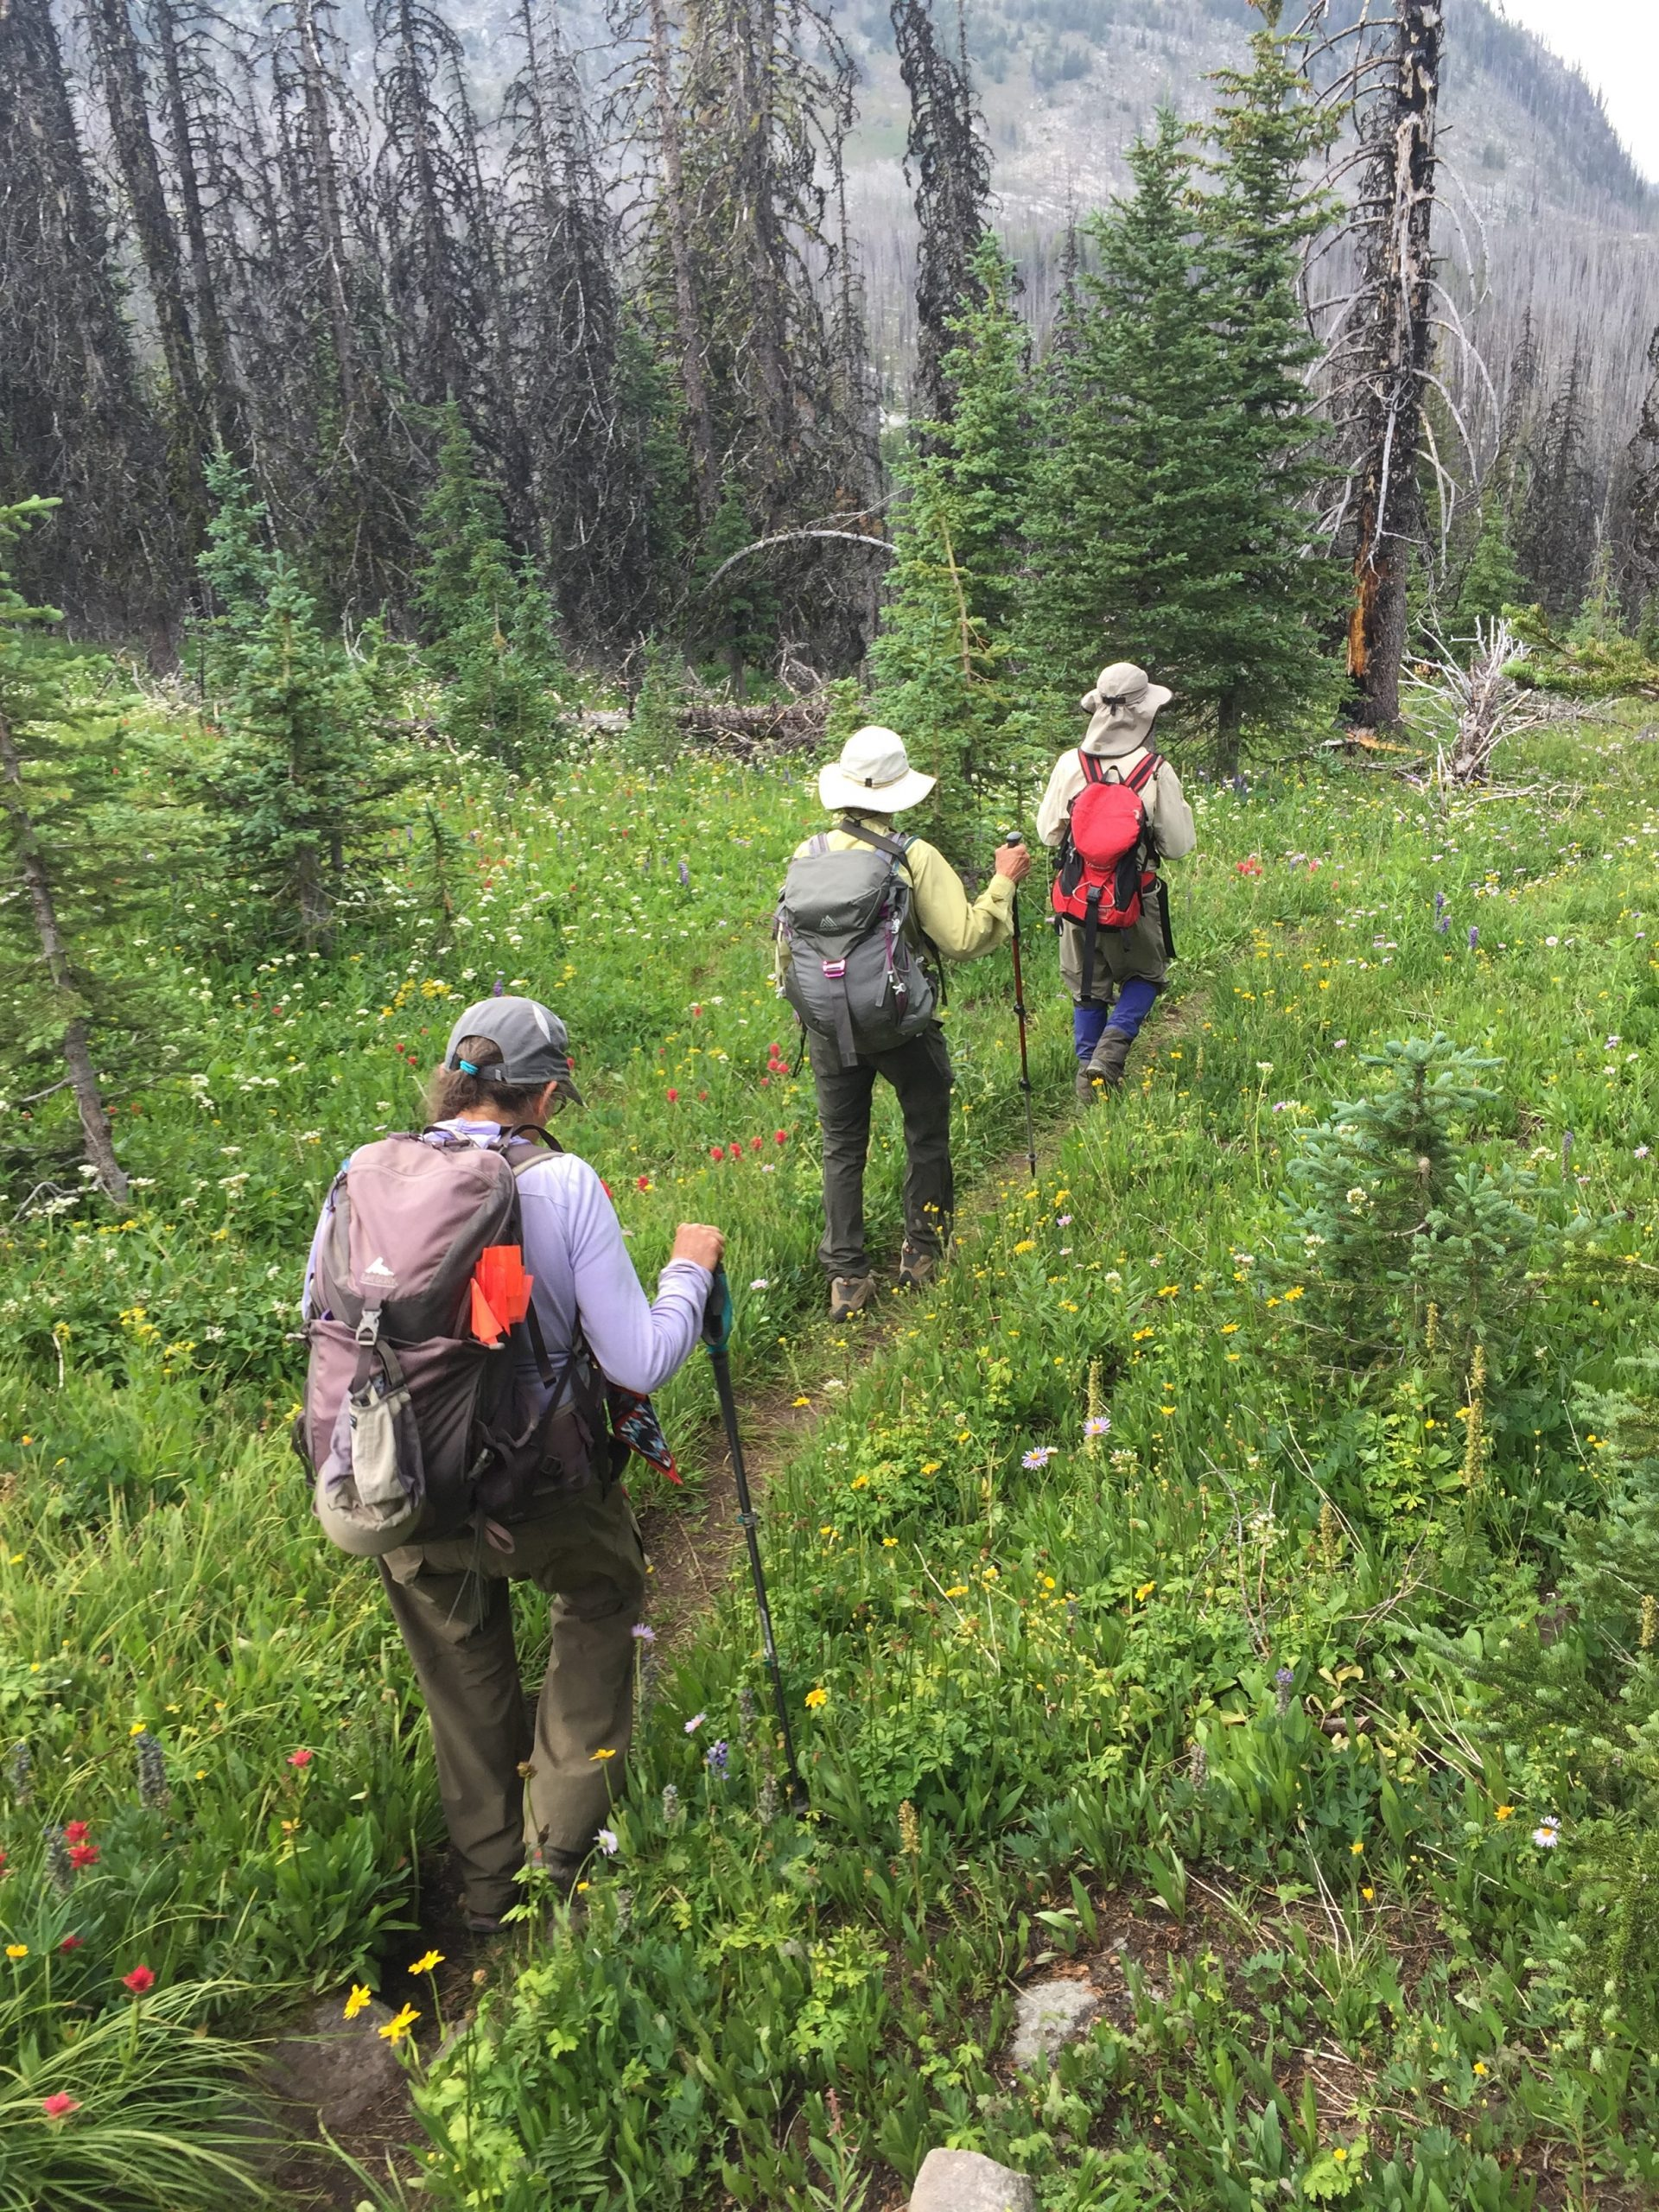 Rare Care volunteers hiking